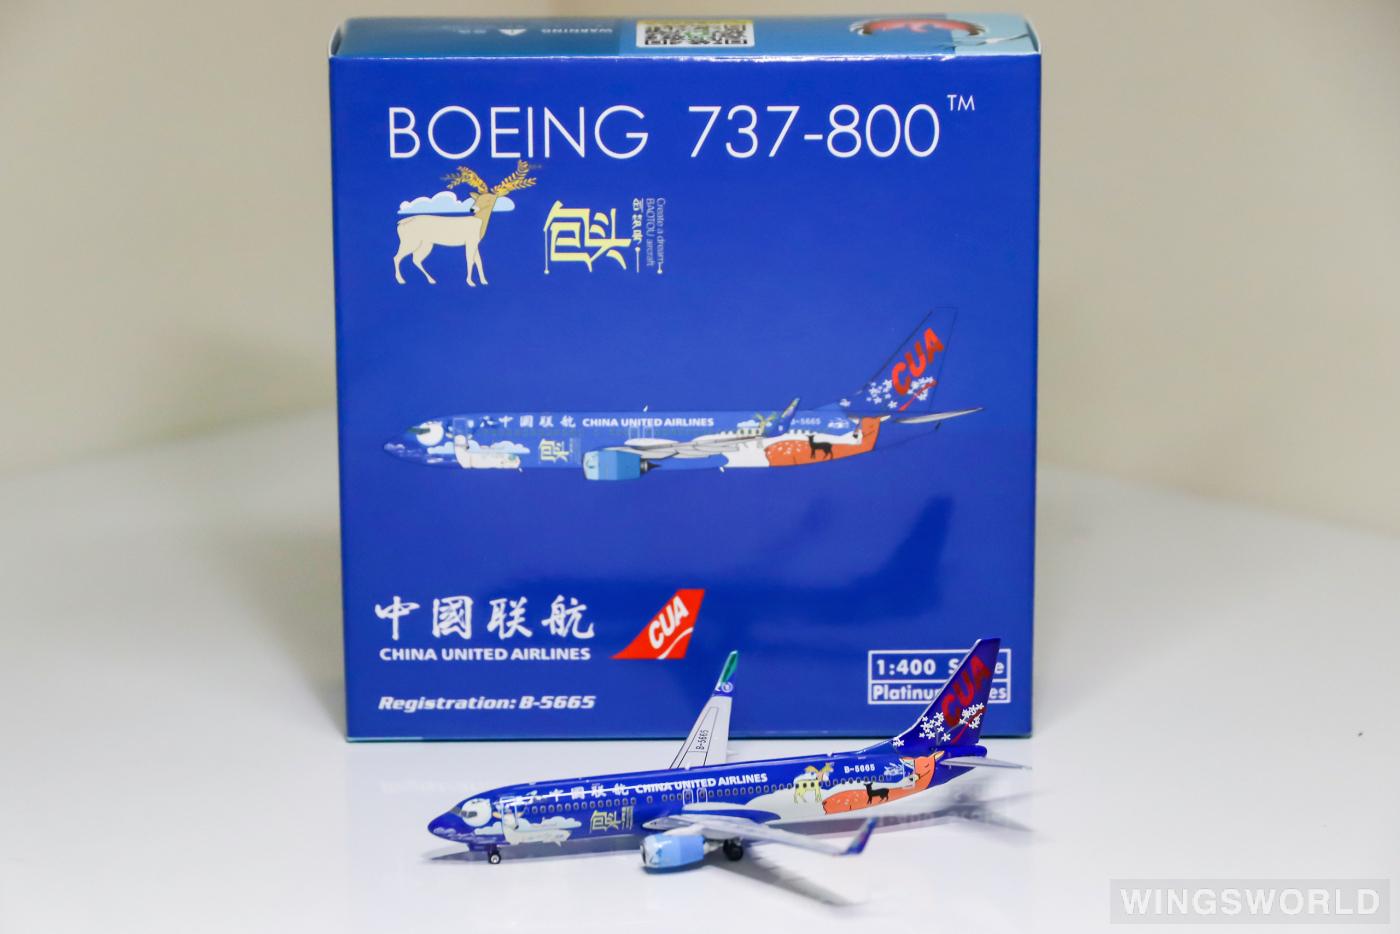 Phoenix 1:400 PH11403 China United Airlines 中国联合航空 Boeing 737-800 B-5665